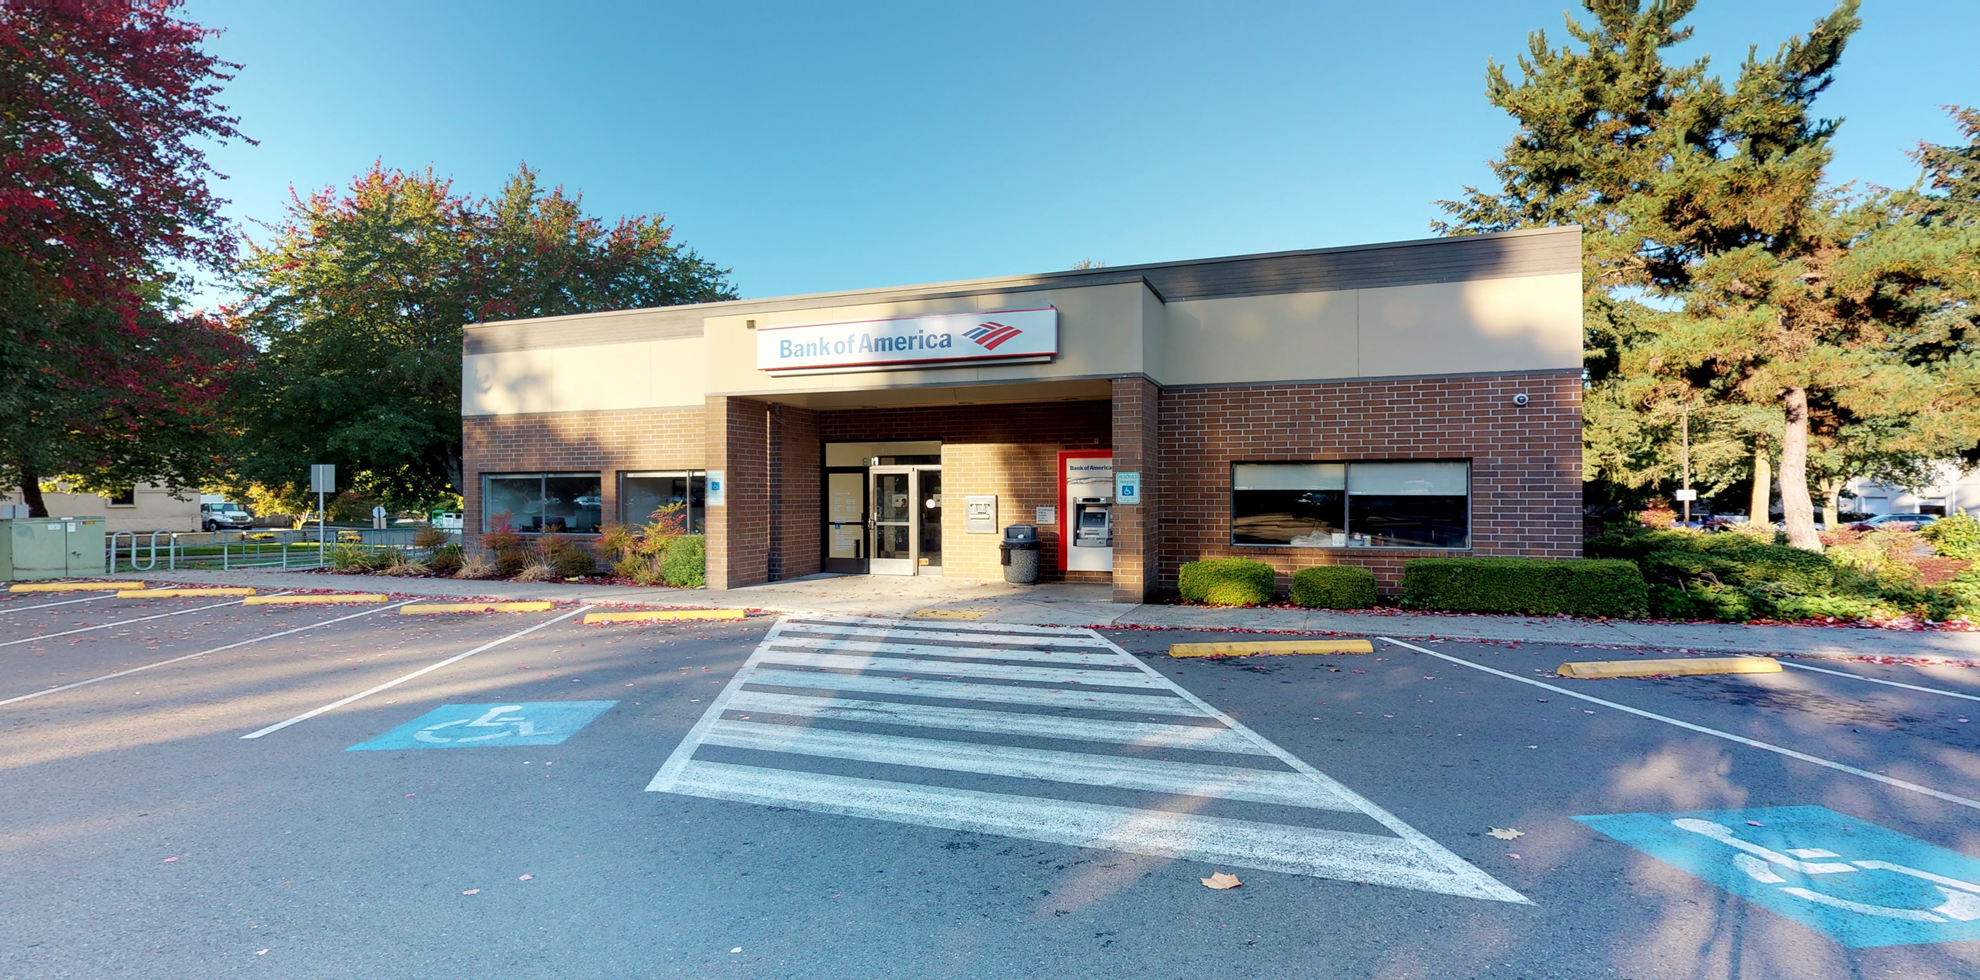 Bank of America financial center with drive-thru ATM   911 161st St SE, Mill Creek, WA 98012